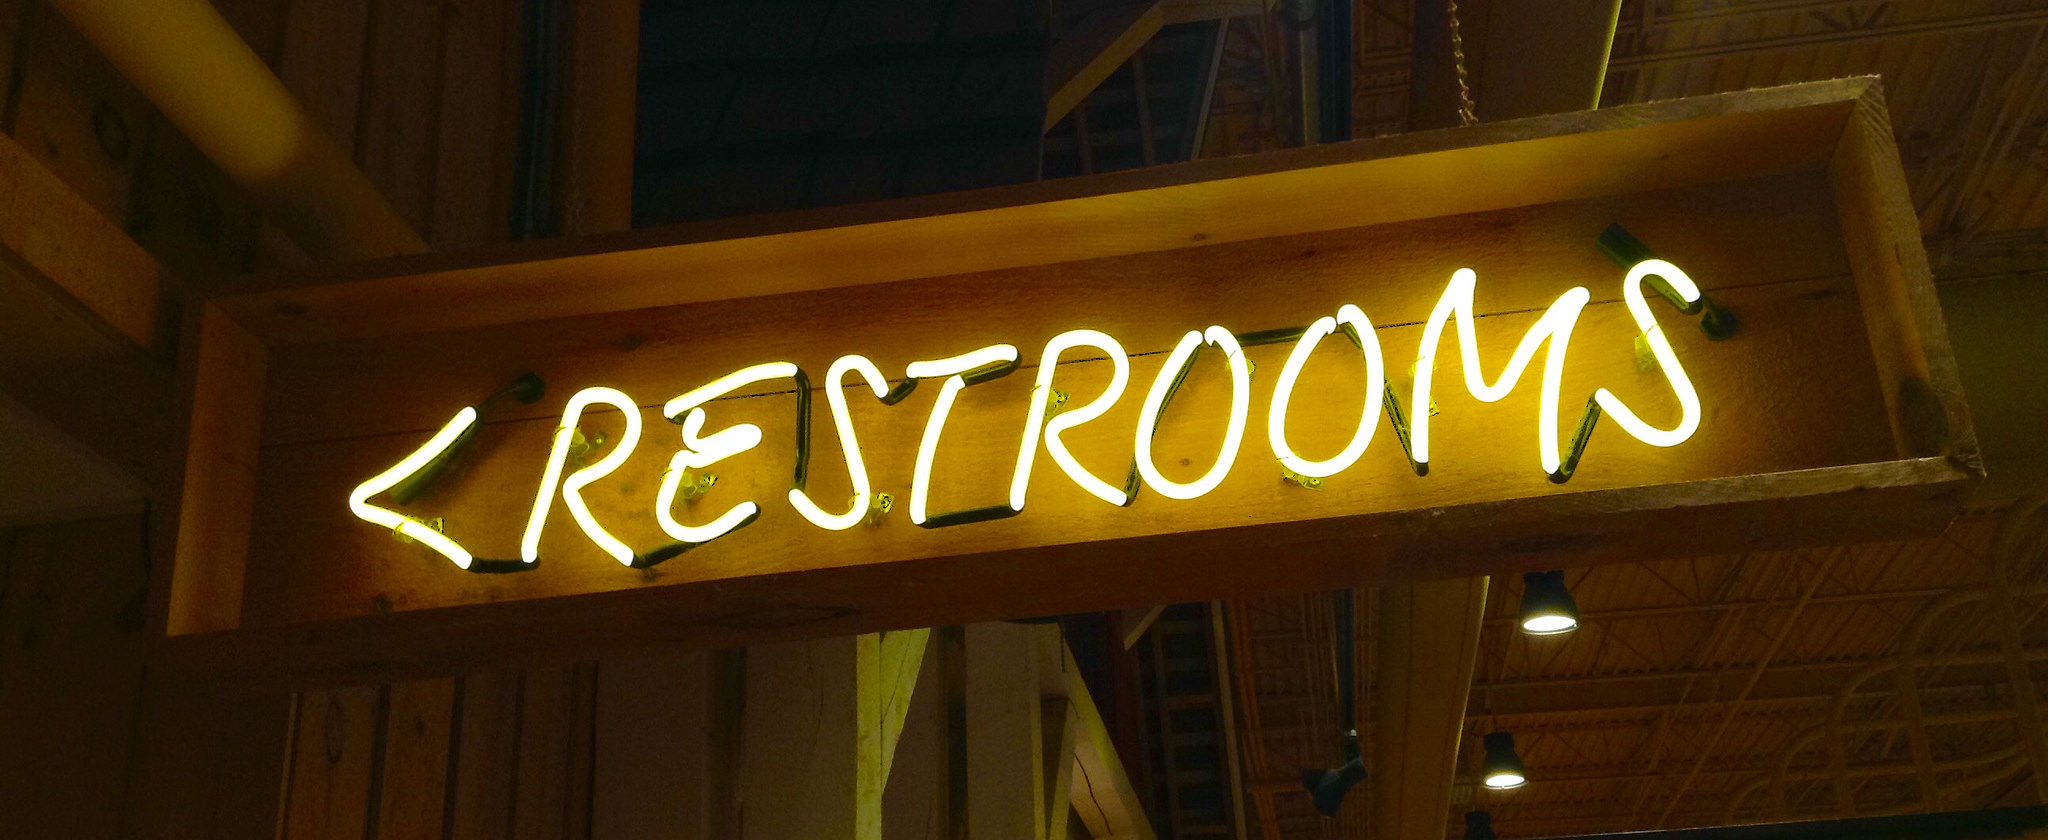 restaurant restrooms neon sign